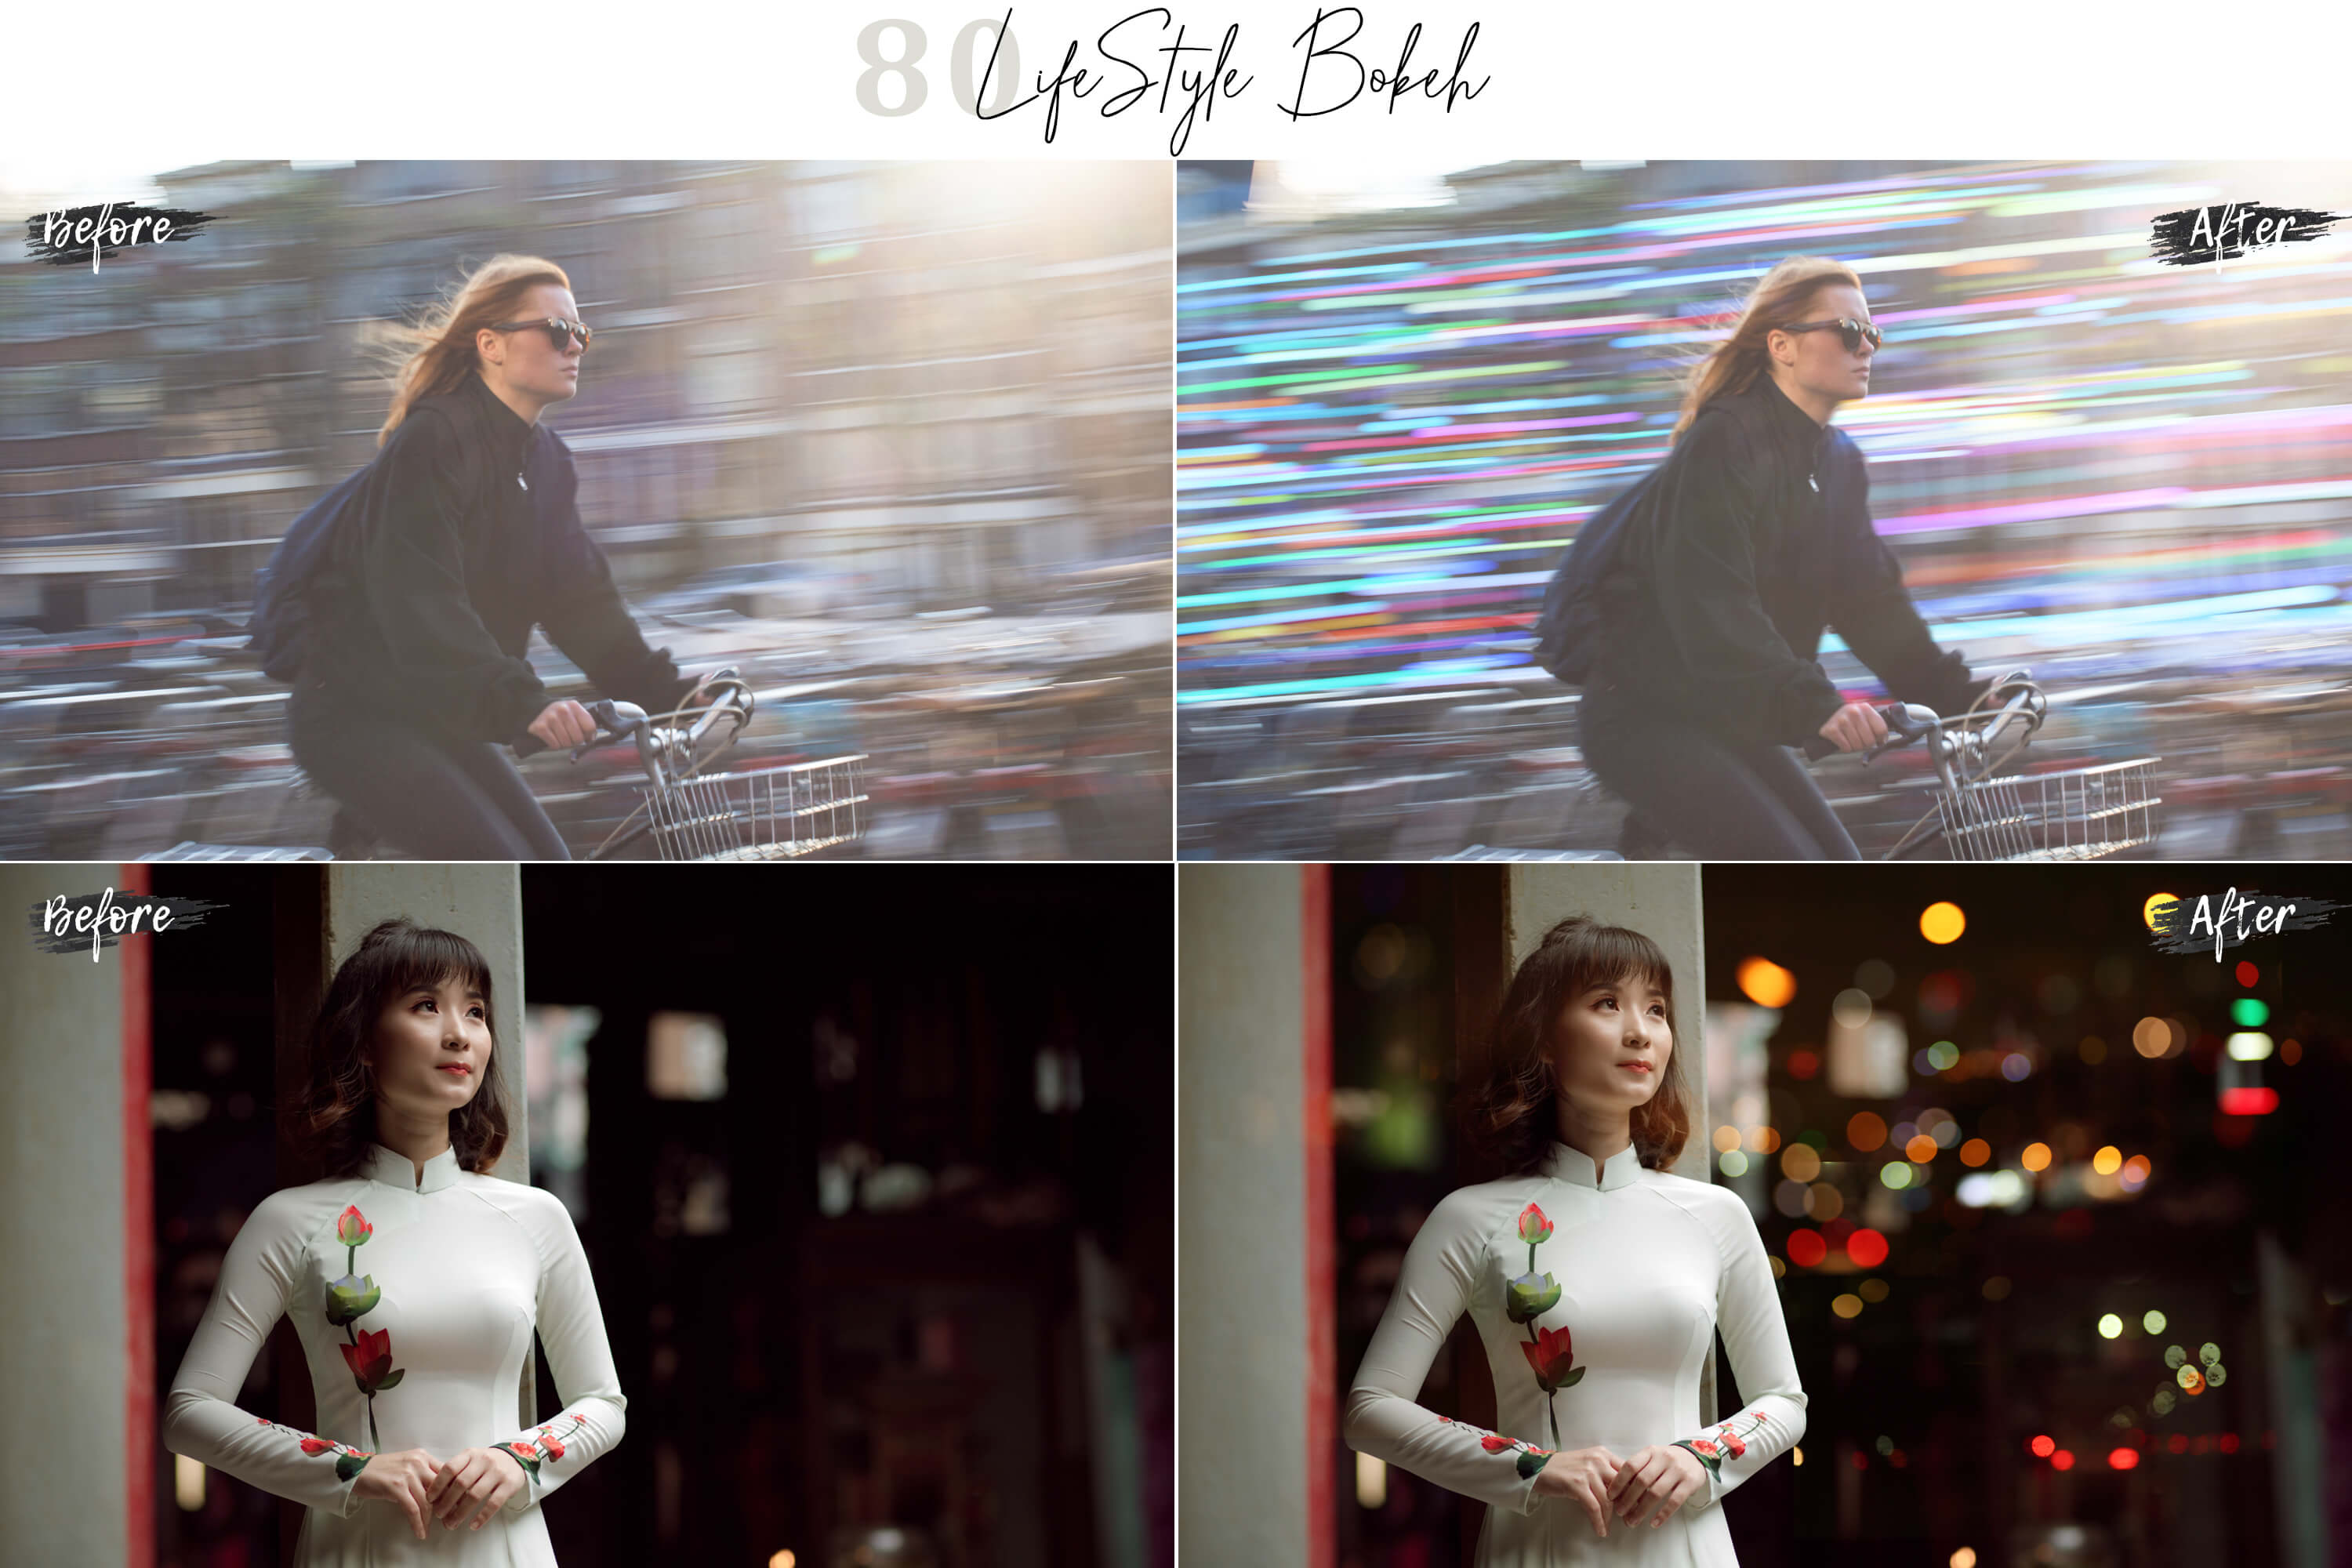 80 Life Style Bokeh Pack 02 lights Effect Photo Overlays example image 6